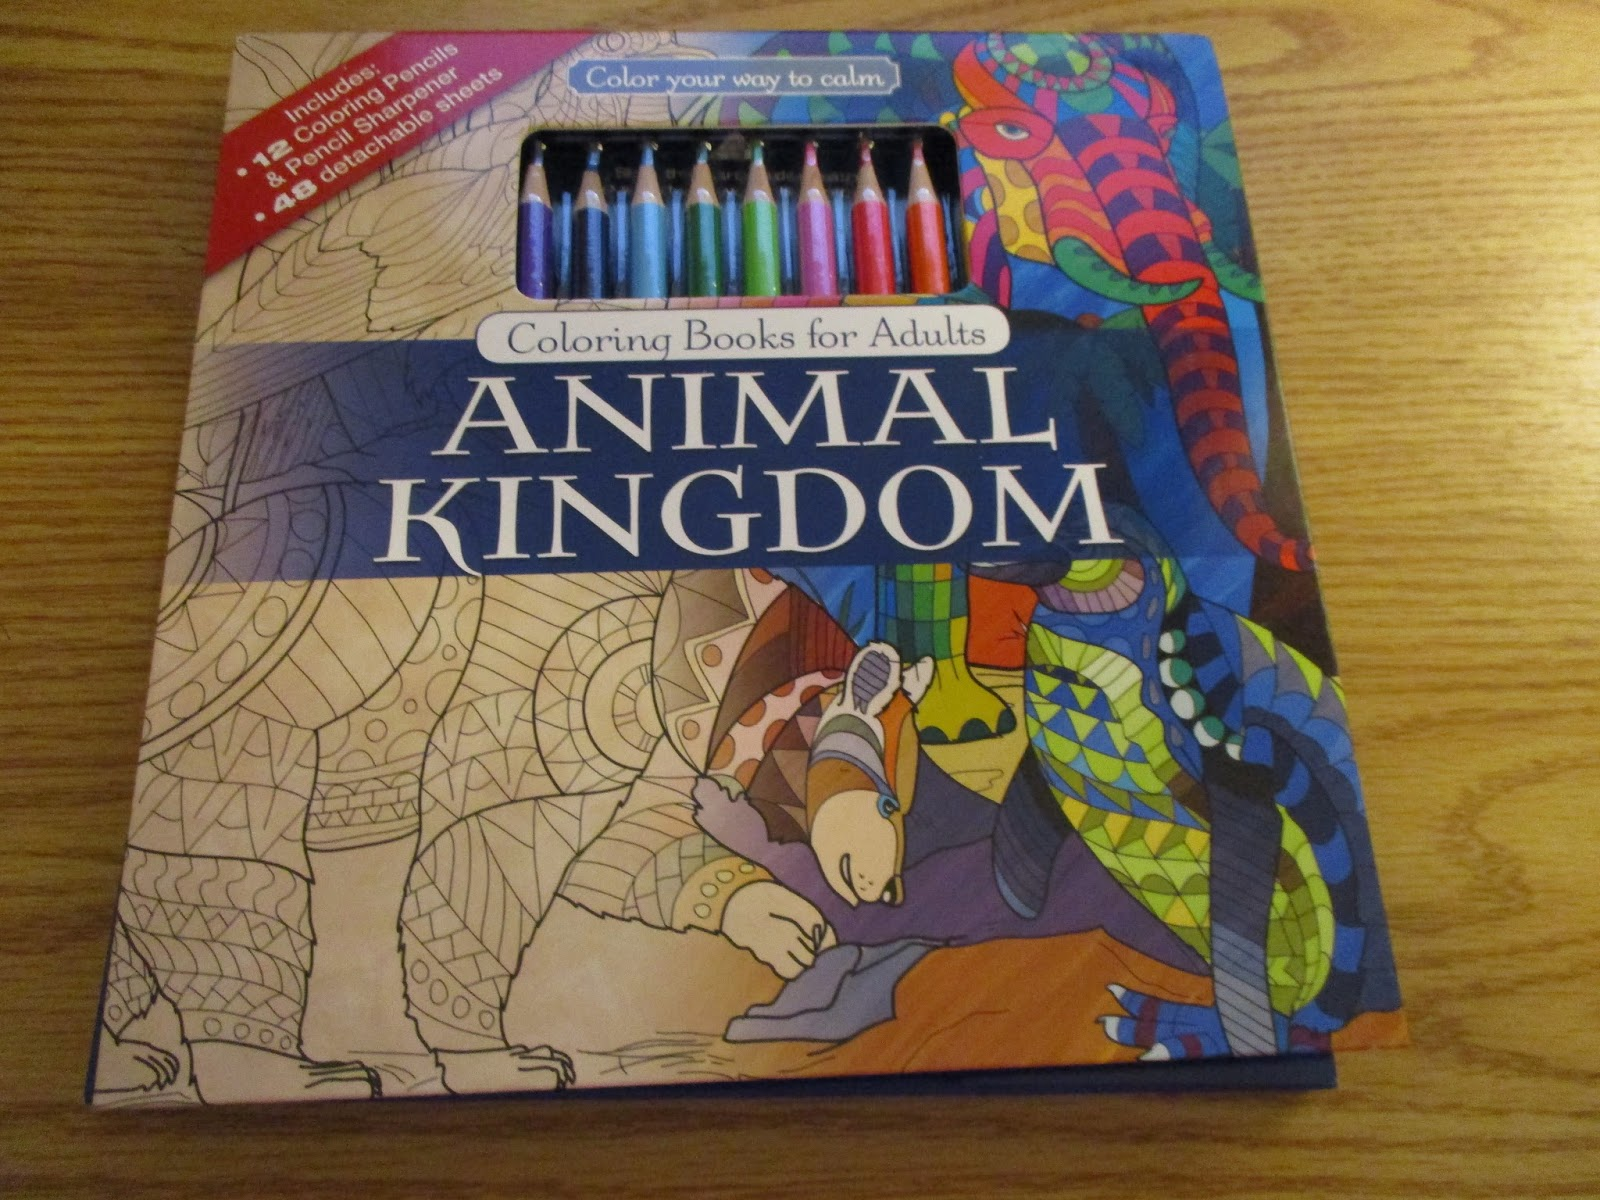 Color With Music Animal Kingdom Coloring Book Includes 24 Colored Pencils A Sharpener You Can Your Way To Calm This Of 48 Pages Single